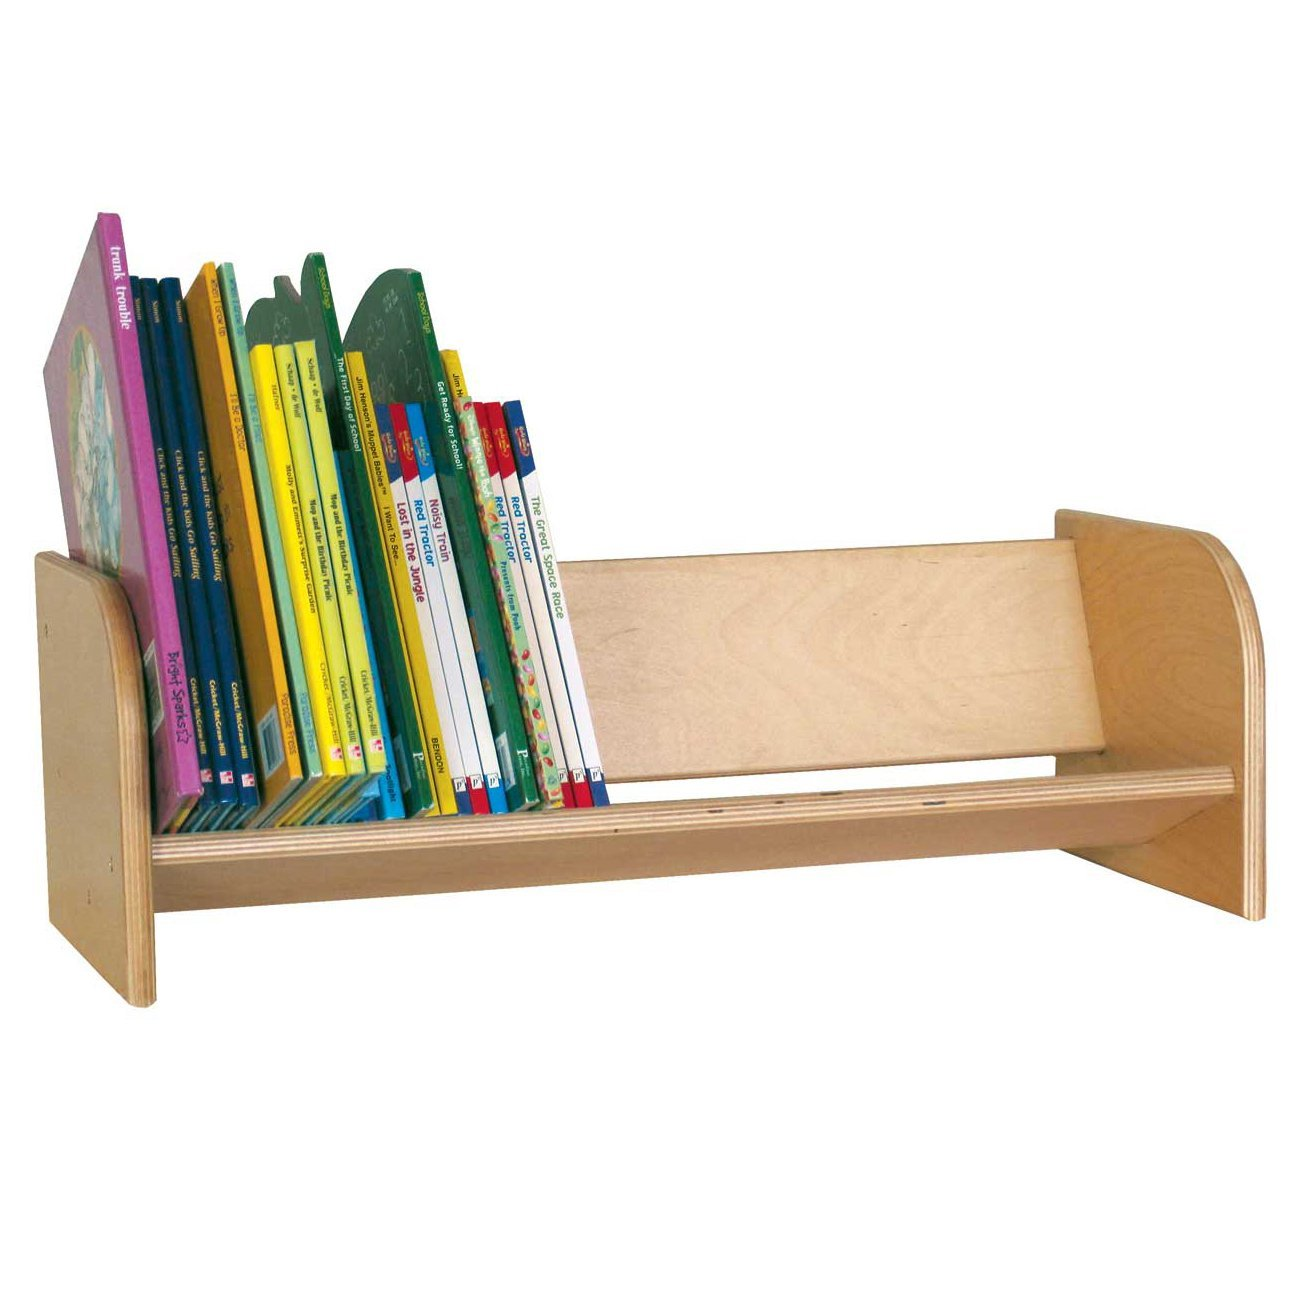 Book Display Stand Wood Designs Wd13900 Book Display Rack 8 X 24 X 10 H X W X D